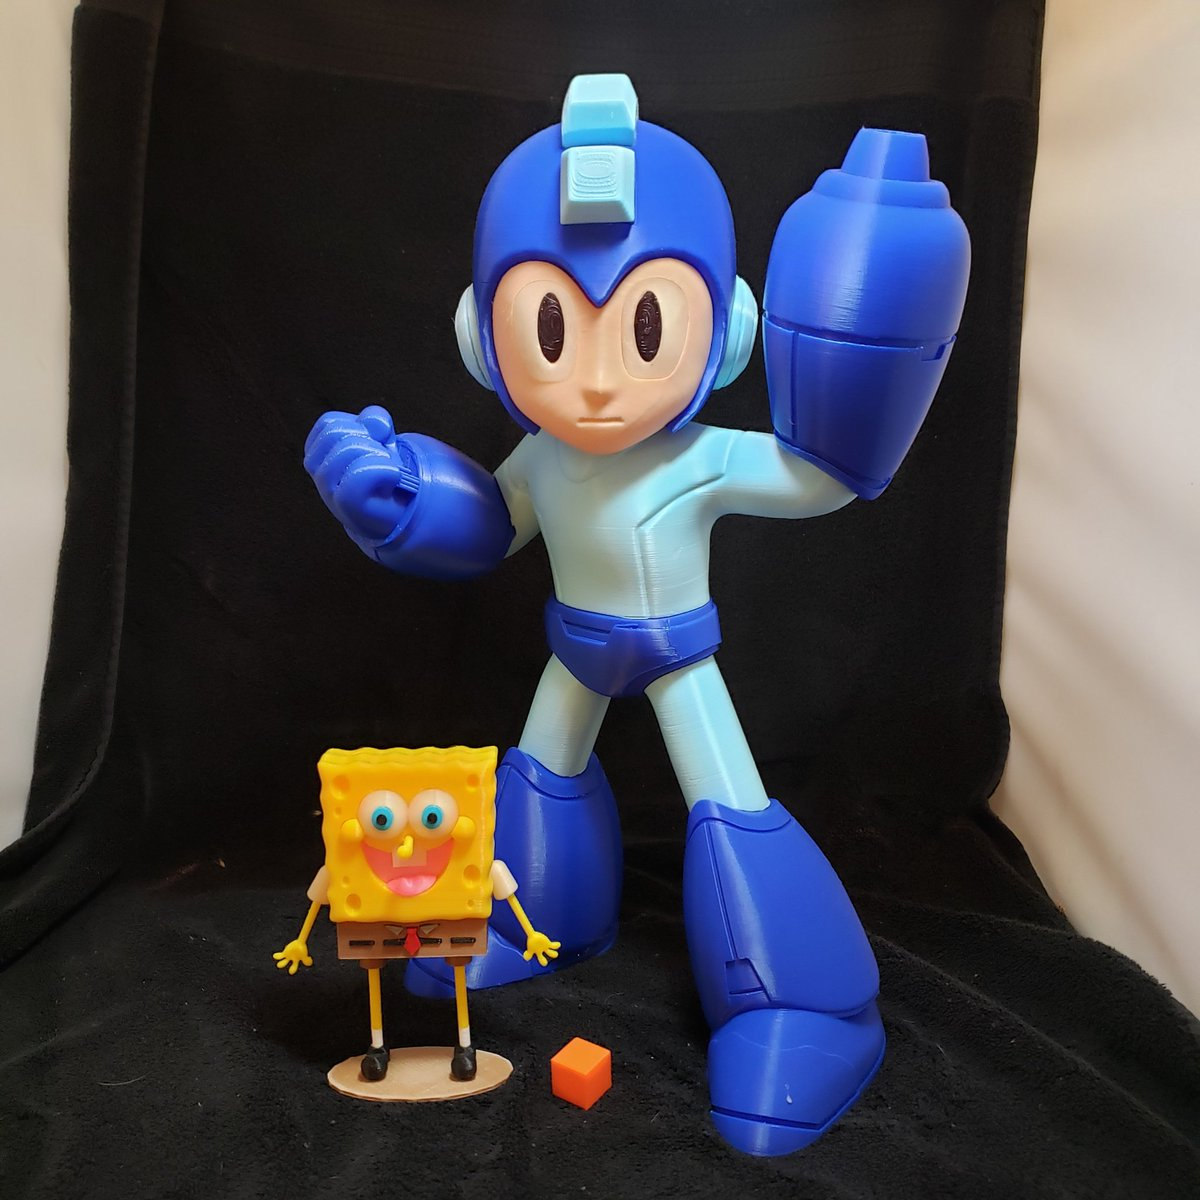 Two of the coolest things I ever printed, that sponge bob was created by the great @theREALwelbot every part is a print, no paint, aside from mega man's pupils. #3dprinted #3dmodeling #3dtechnology #3dprinter #3dmaker #pla #bowden #fdmprinter #ed3 #filament #maker